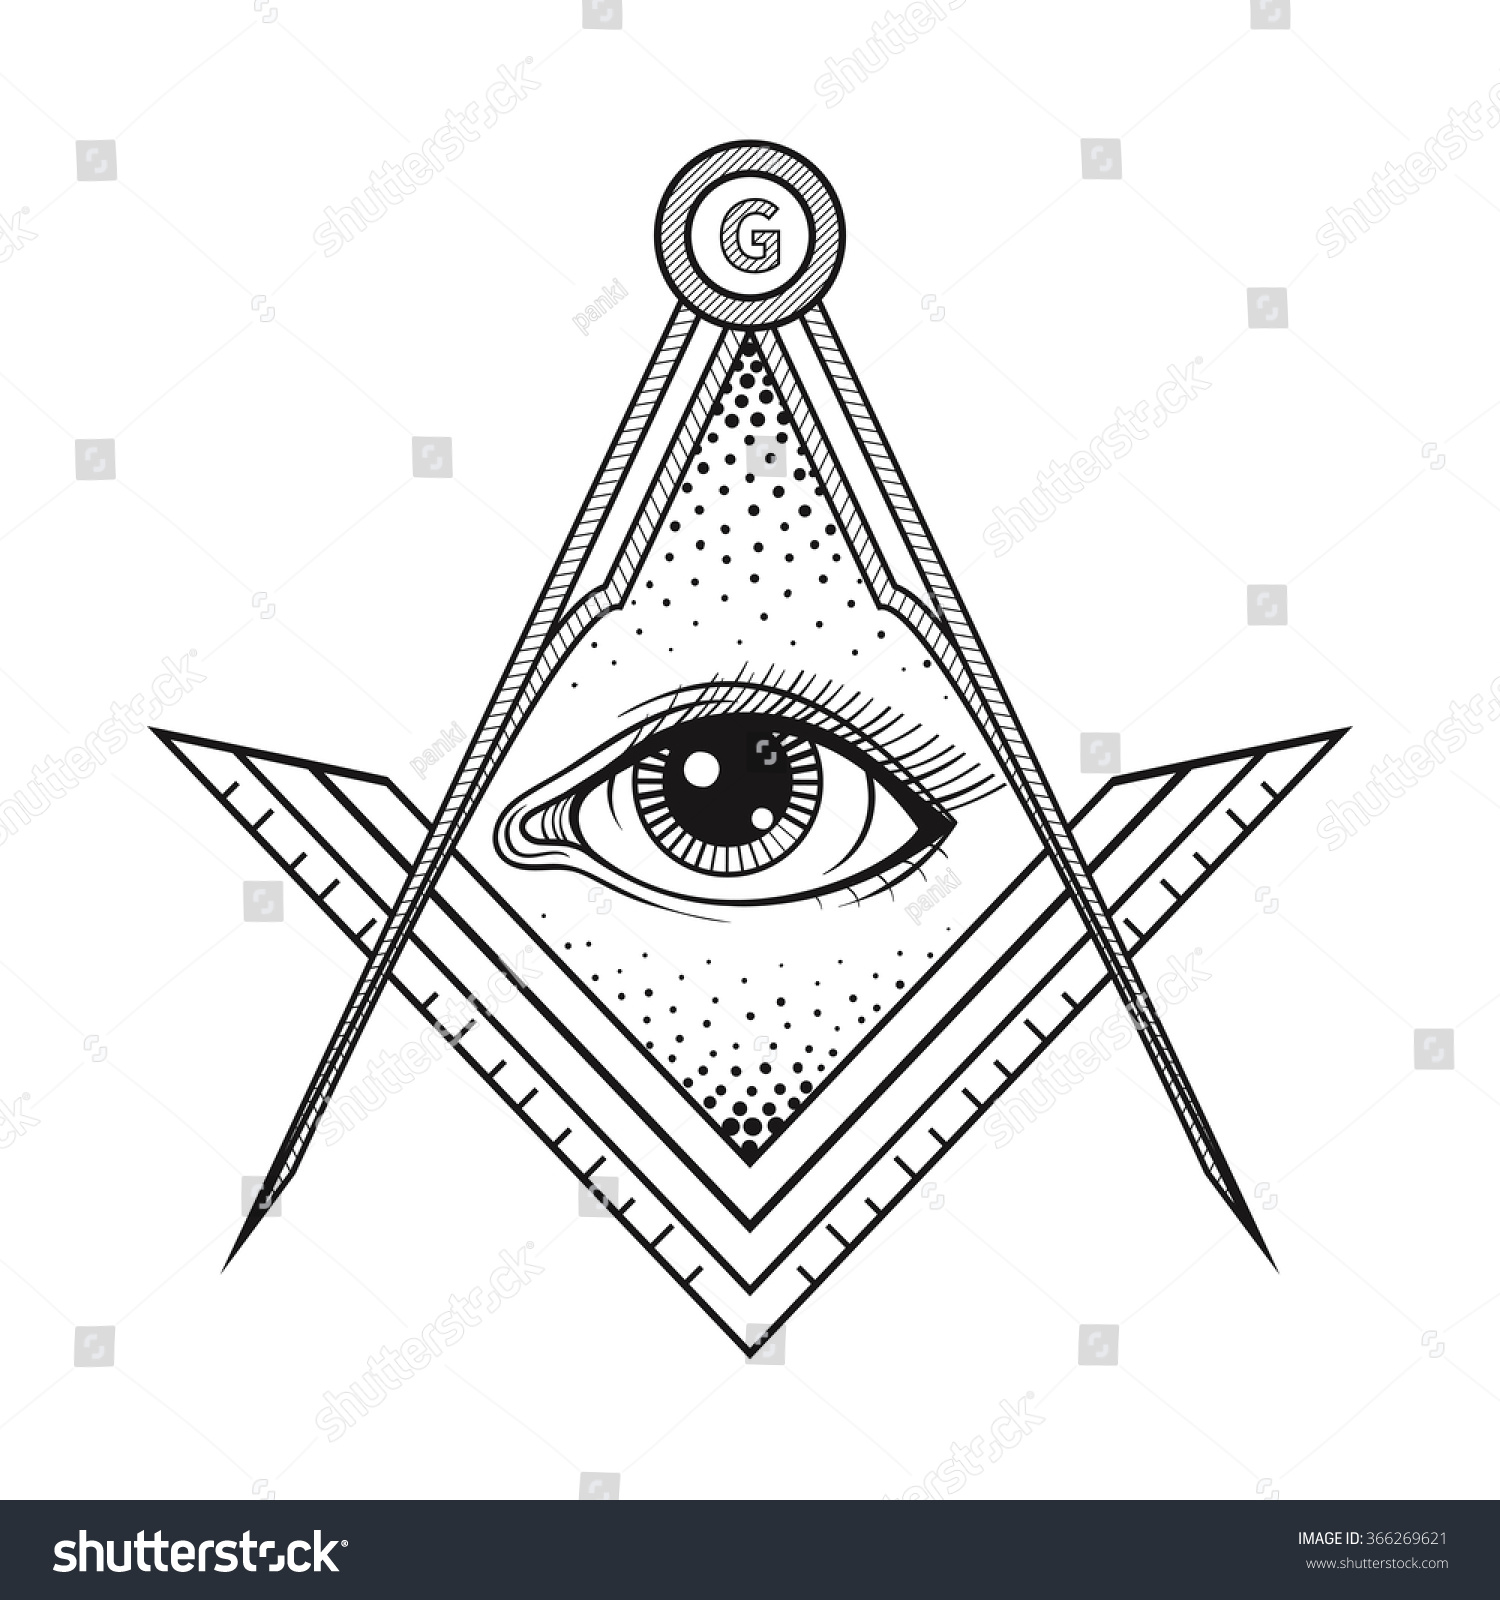 Masonic square compass symbol all seeing stock illustration masonic square and compass symbol with all seeing eye freemason sacred society emblem for tattoo biocorpaavc Images